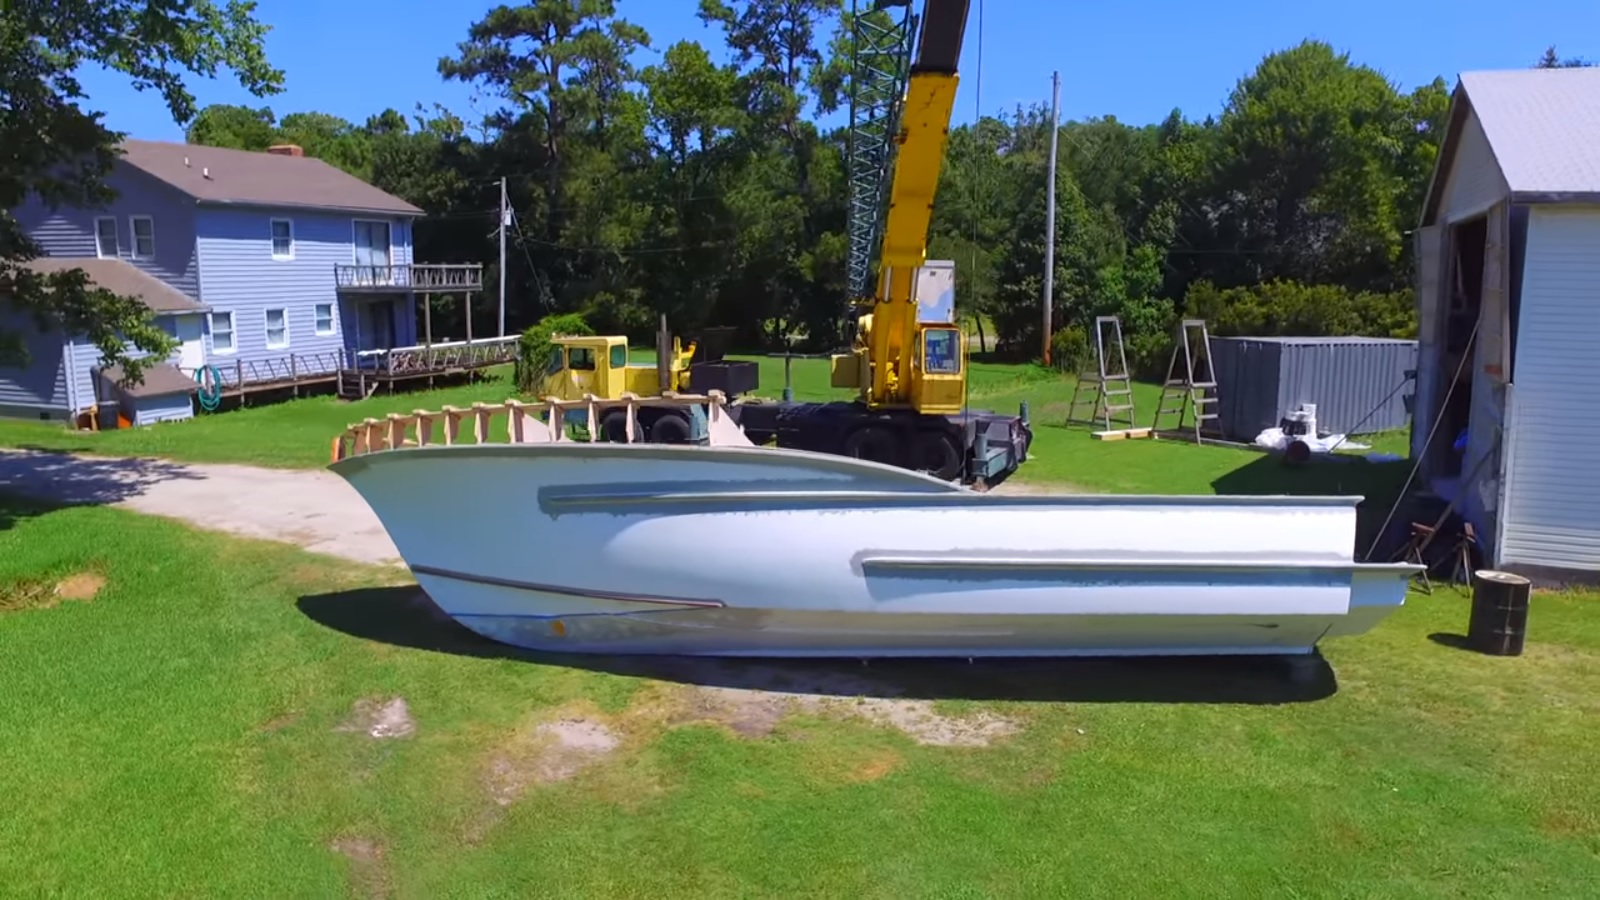 B and B Yacht Designs Rough Point Boatworks Rough Point 37 hull turning pod view right side up.jpg